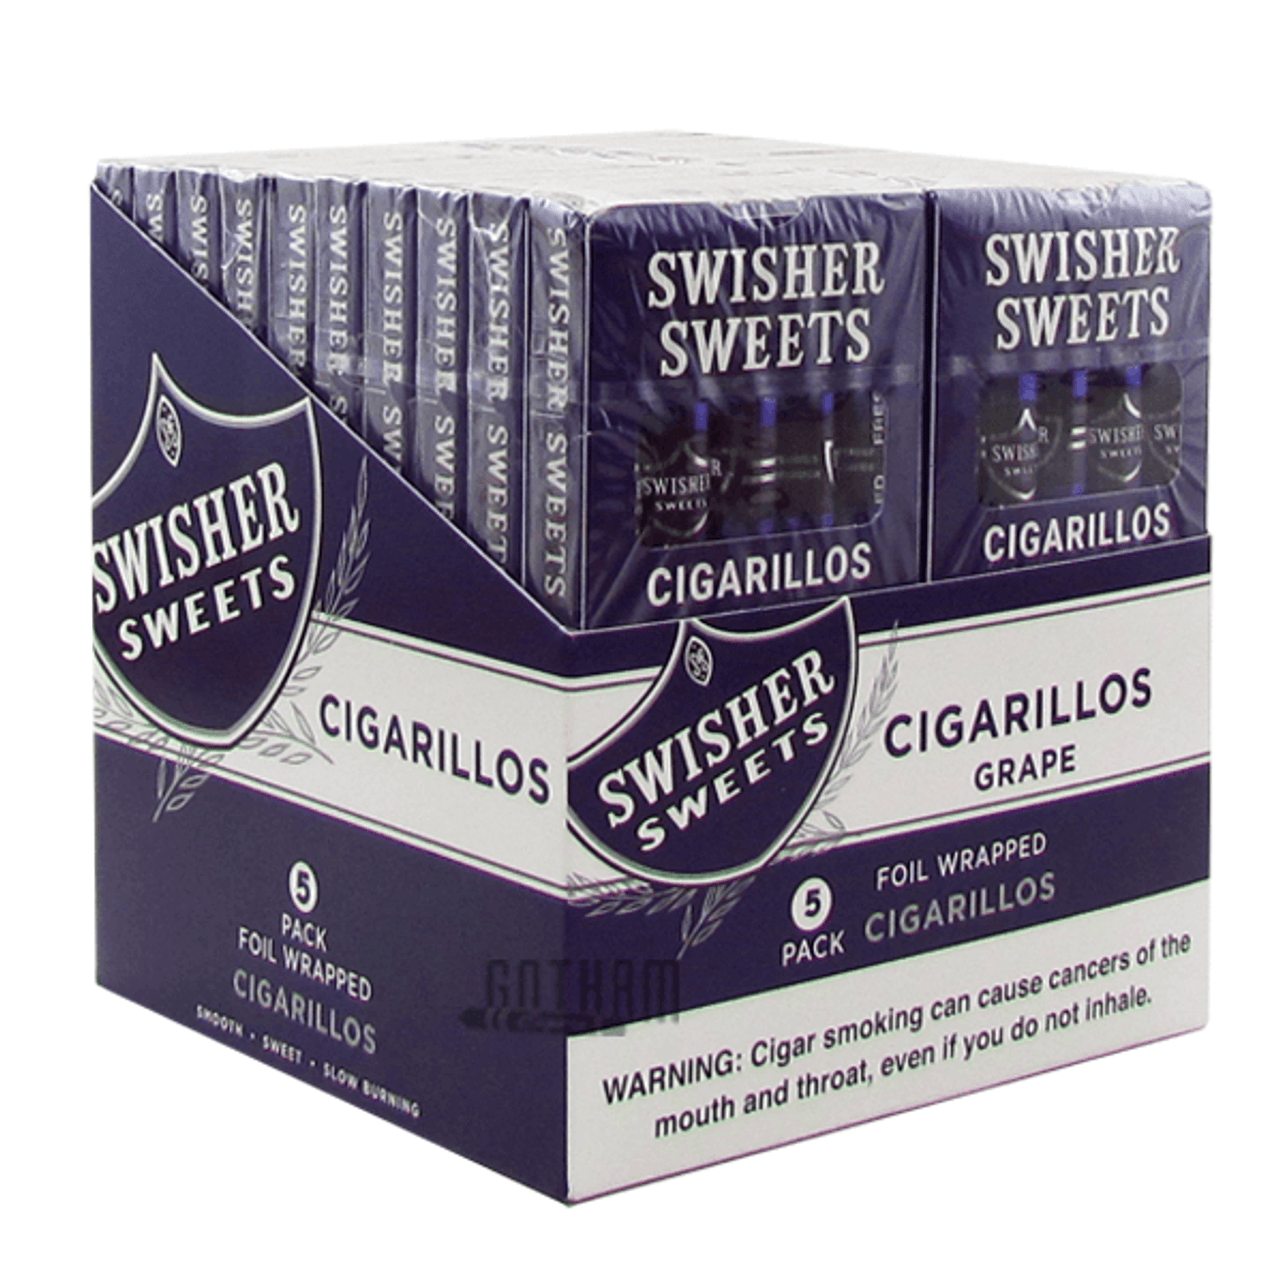 Swisher Sweets Cigarillos Grape Pack